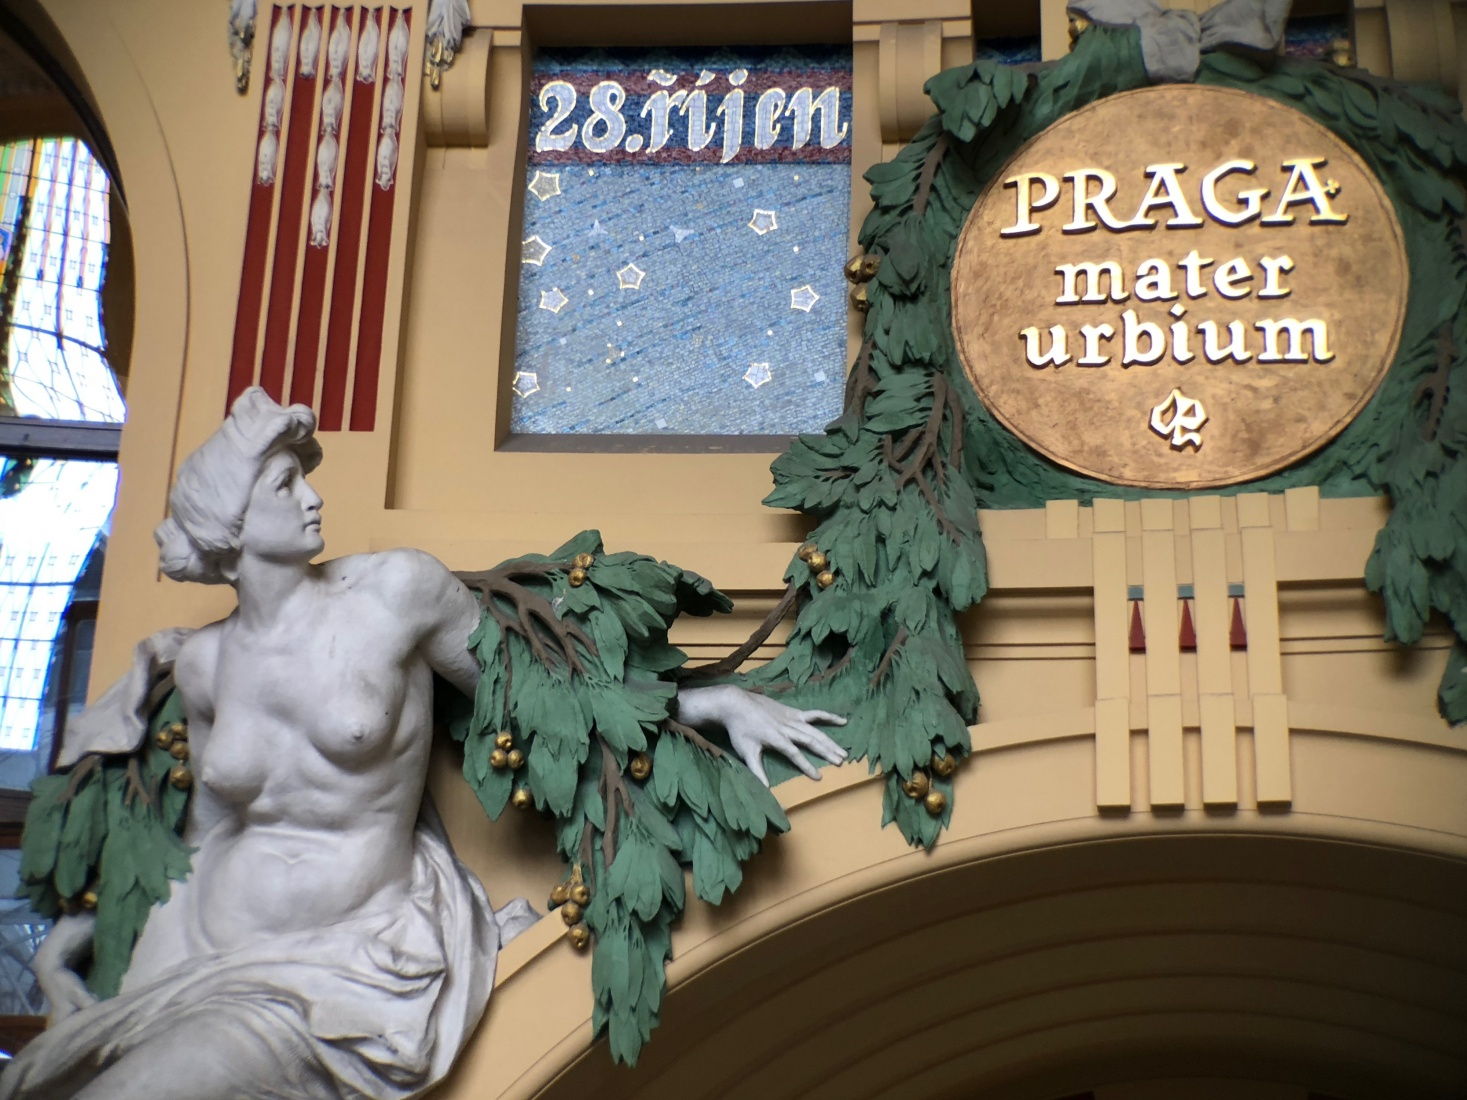 Detailed statue and emblem in the historic core of Prague main train station display influence of Parisian-style Art Nouveau.